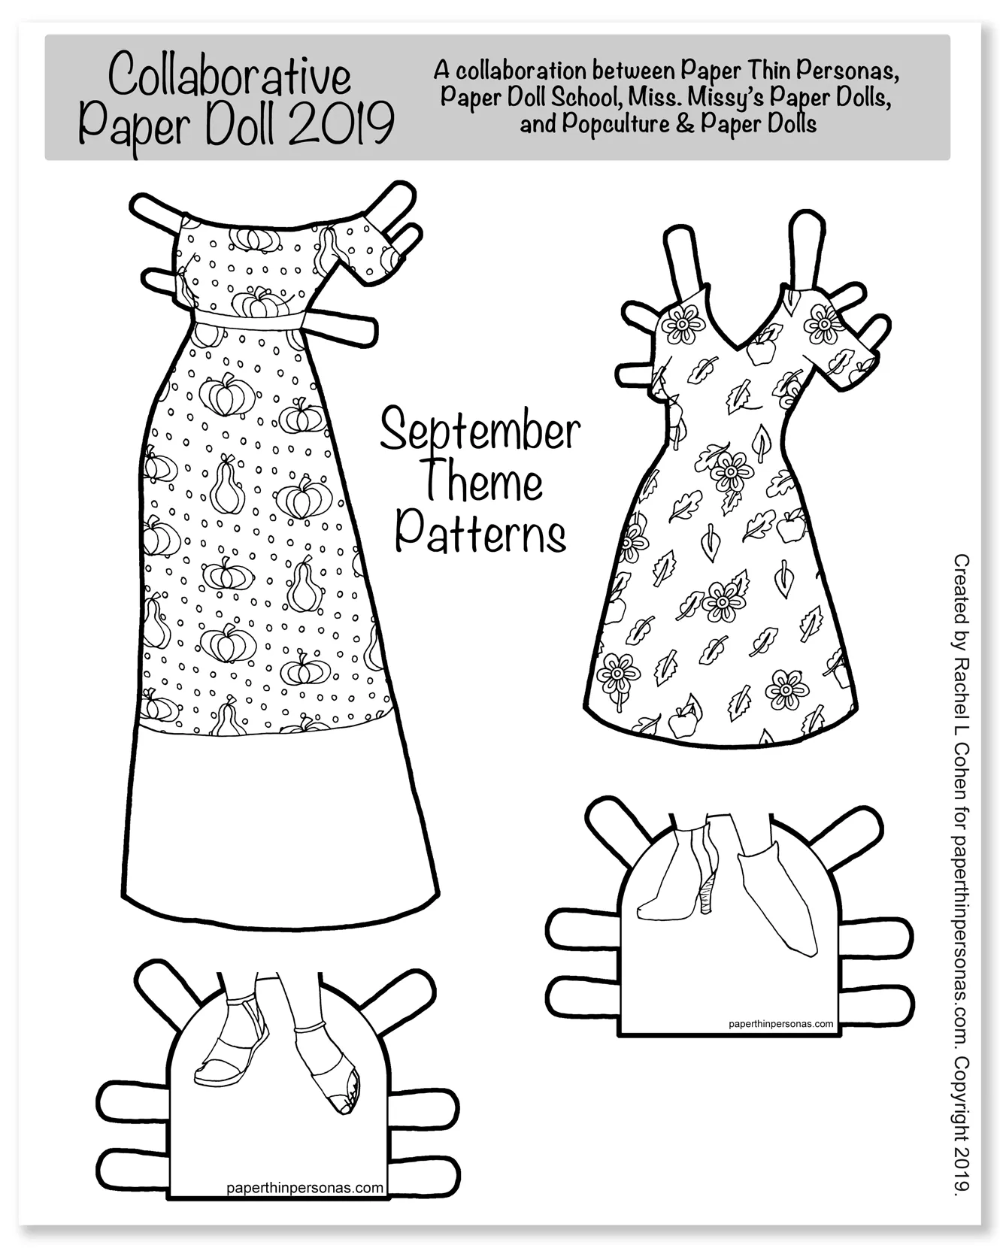 paper doll template with clothes doll clothing template paperdoll templatebodyhairclothes with doll clothes paper template